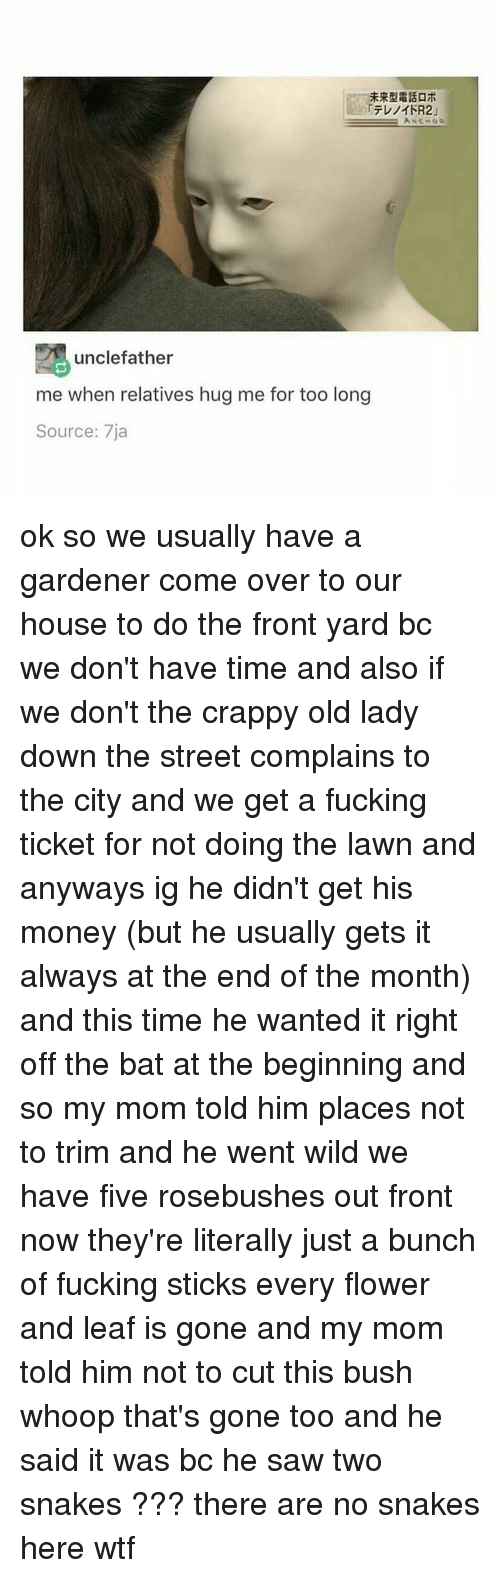 Black Twitter, Bush, and Leaf: unclefather  me when relatives hug me for too long  Source: 7ja ok so we usually have a gardener come over to our house to do the front yard bc we don't have time and also if we don't the crappy old lady down the street complains to the city and we get a fucking ticket for not doing the lawn and anyways ig he didn't get his money (but he usually gets it always at the end of the month) and this time he wanted it right off the bat at the beginning and so my mom told him places not to trim and he went wild we have five rosebushes out front now they're literally just a bunch of fucking sticks every flower and leaf is gone and my mom told him not to cut this bush whoop that's gone too and he said it was bc he saw two snakes ??? there are no snakes here wtf